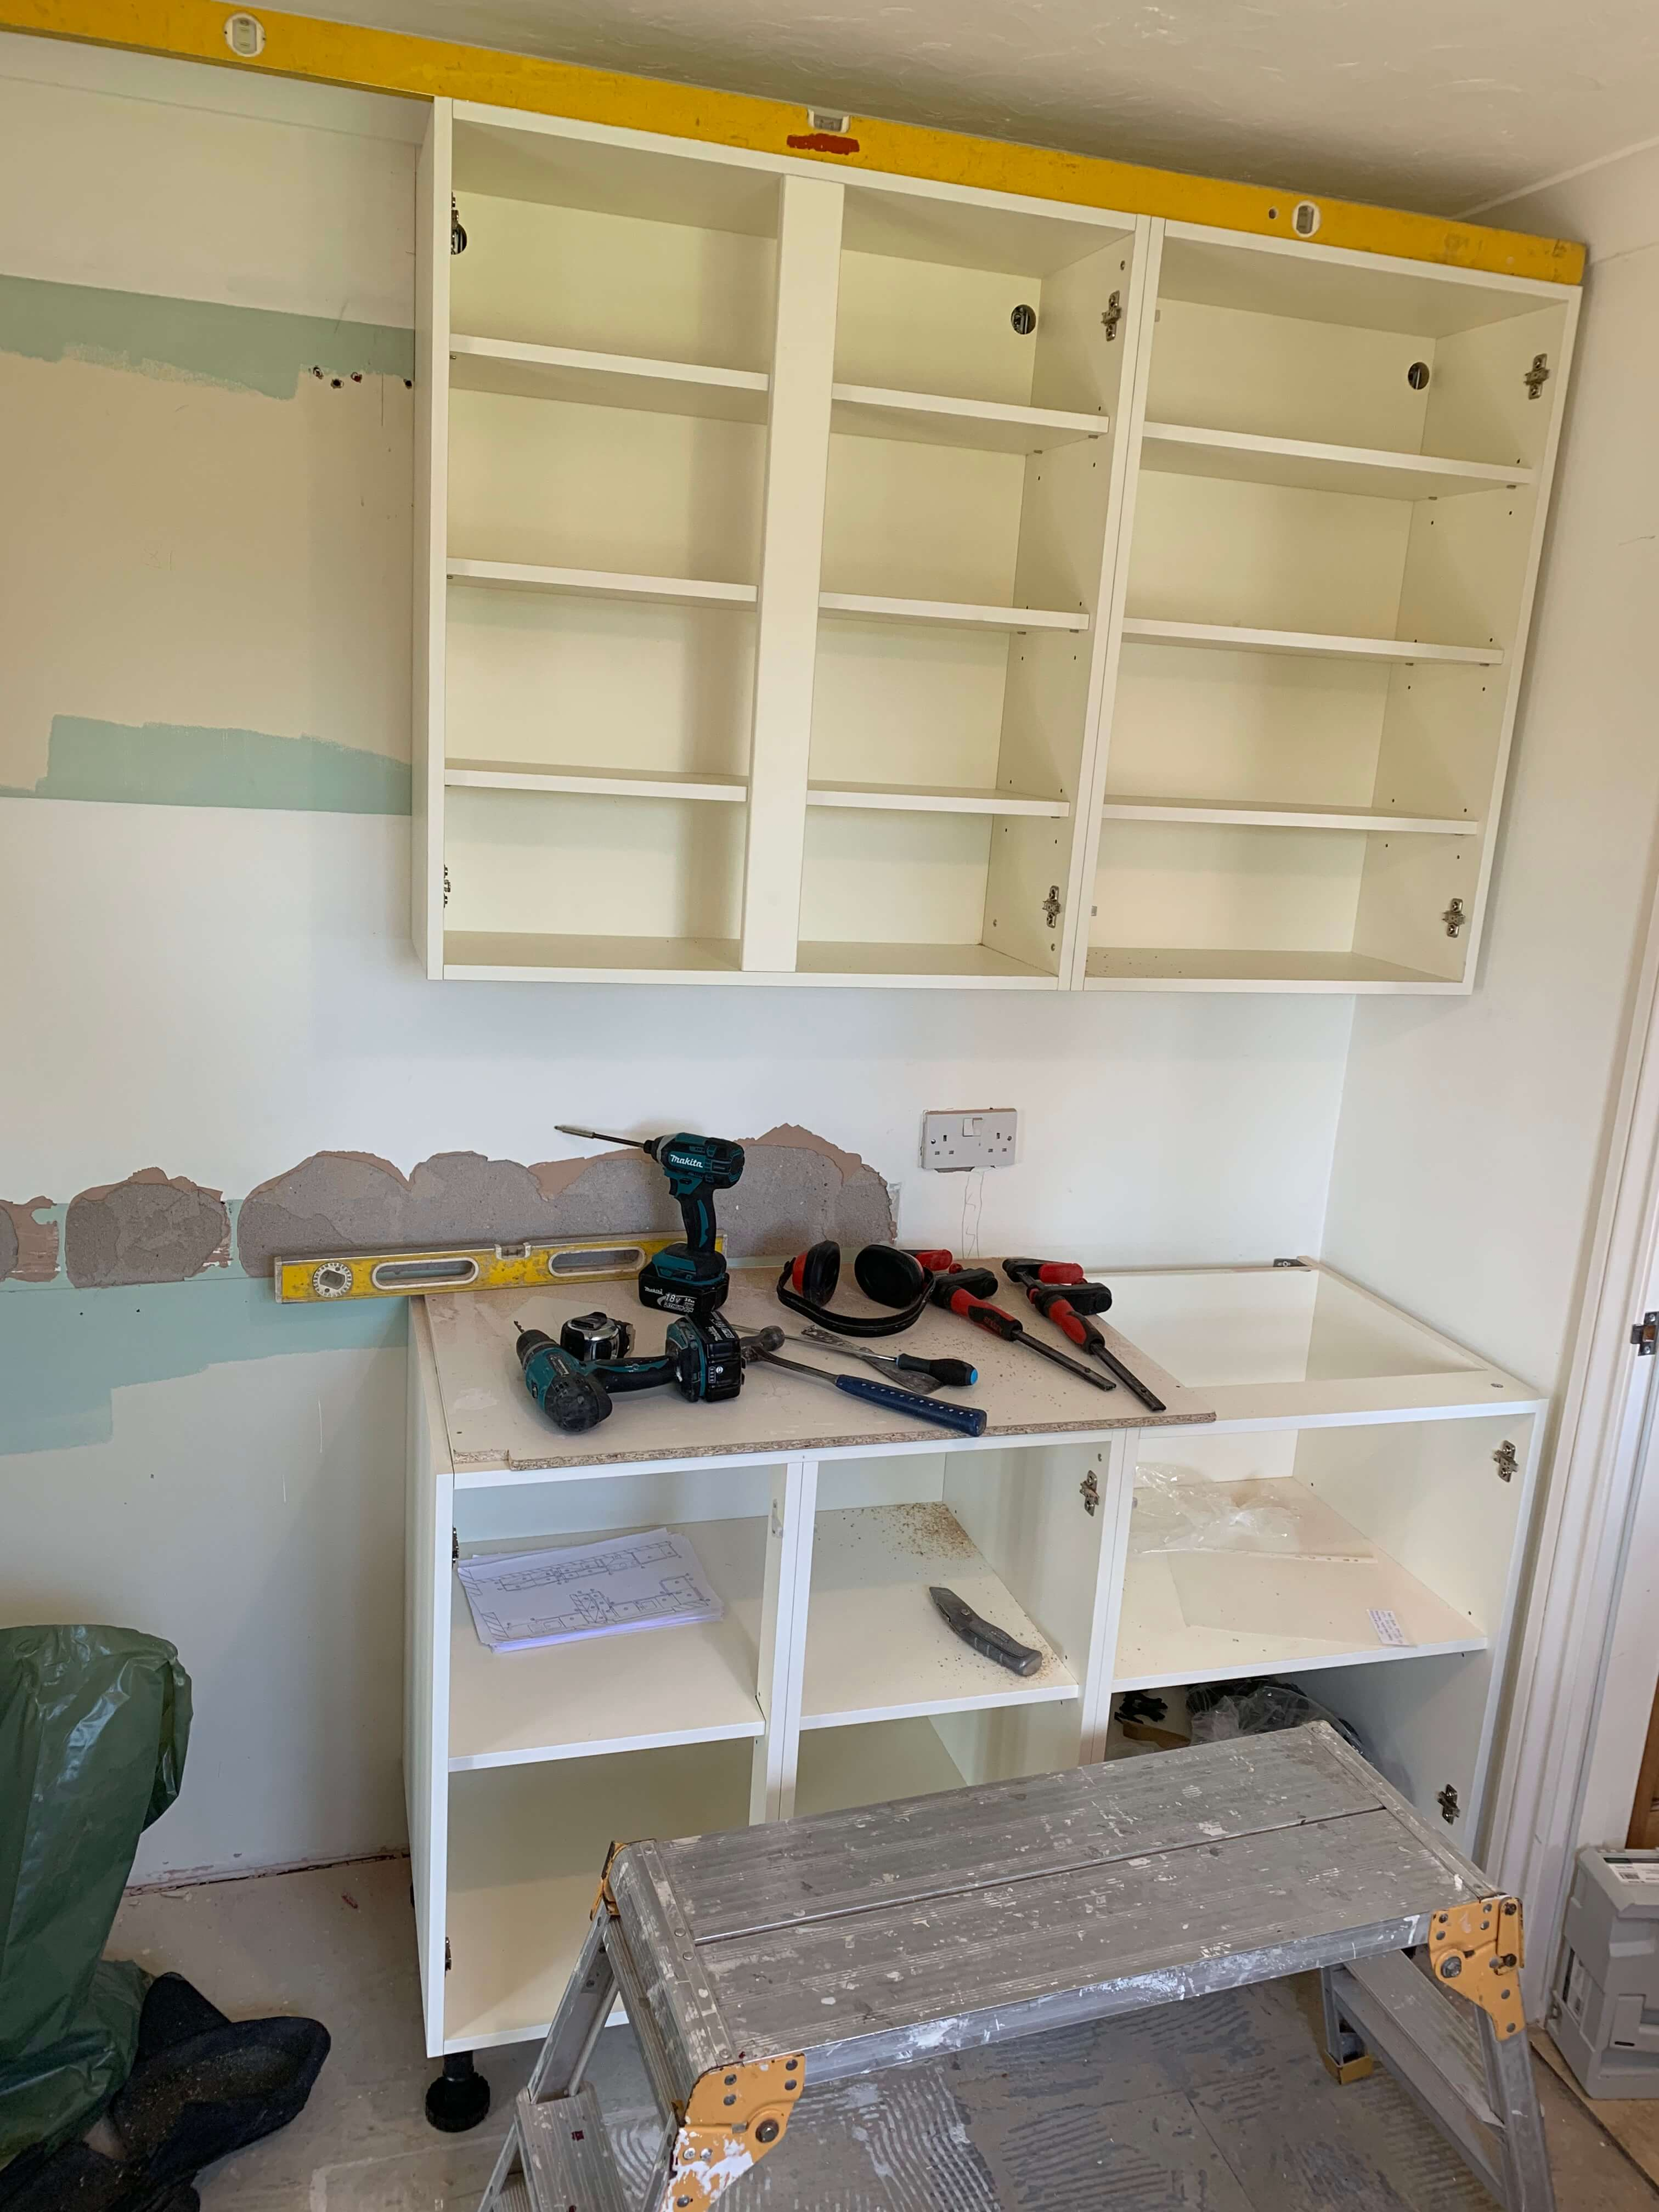 Wall units are now fitted